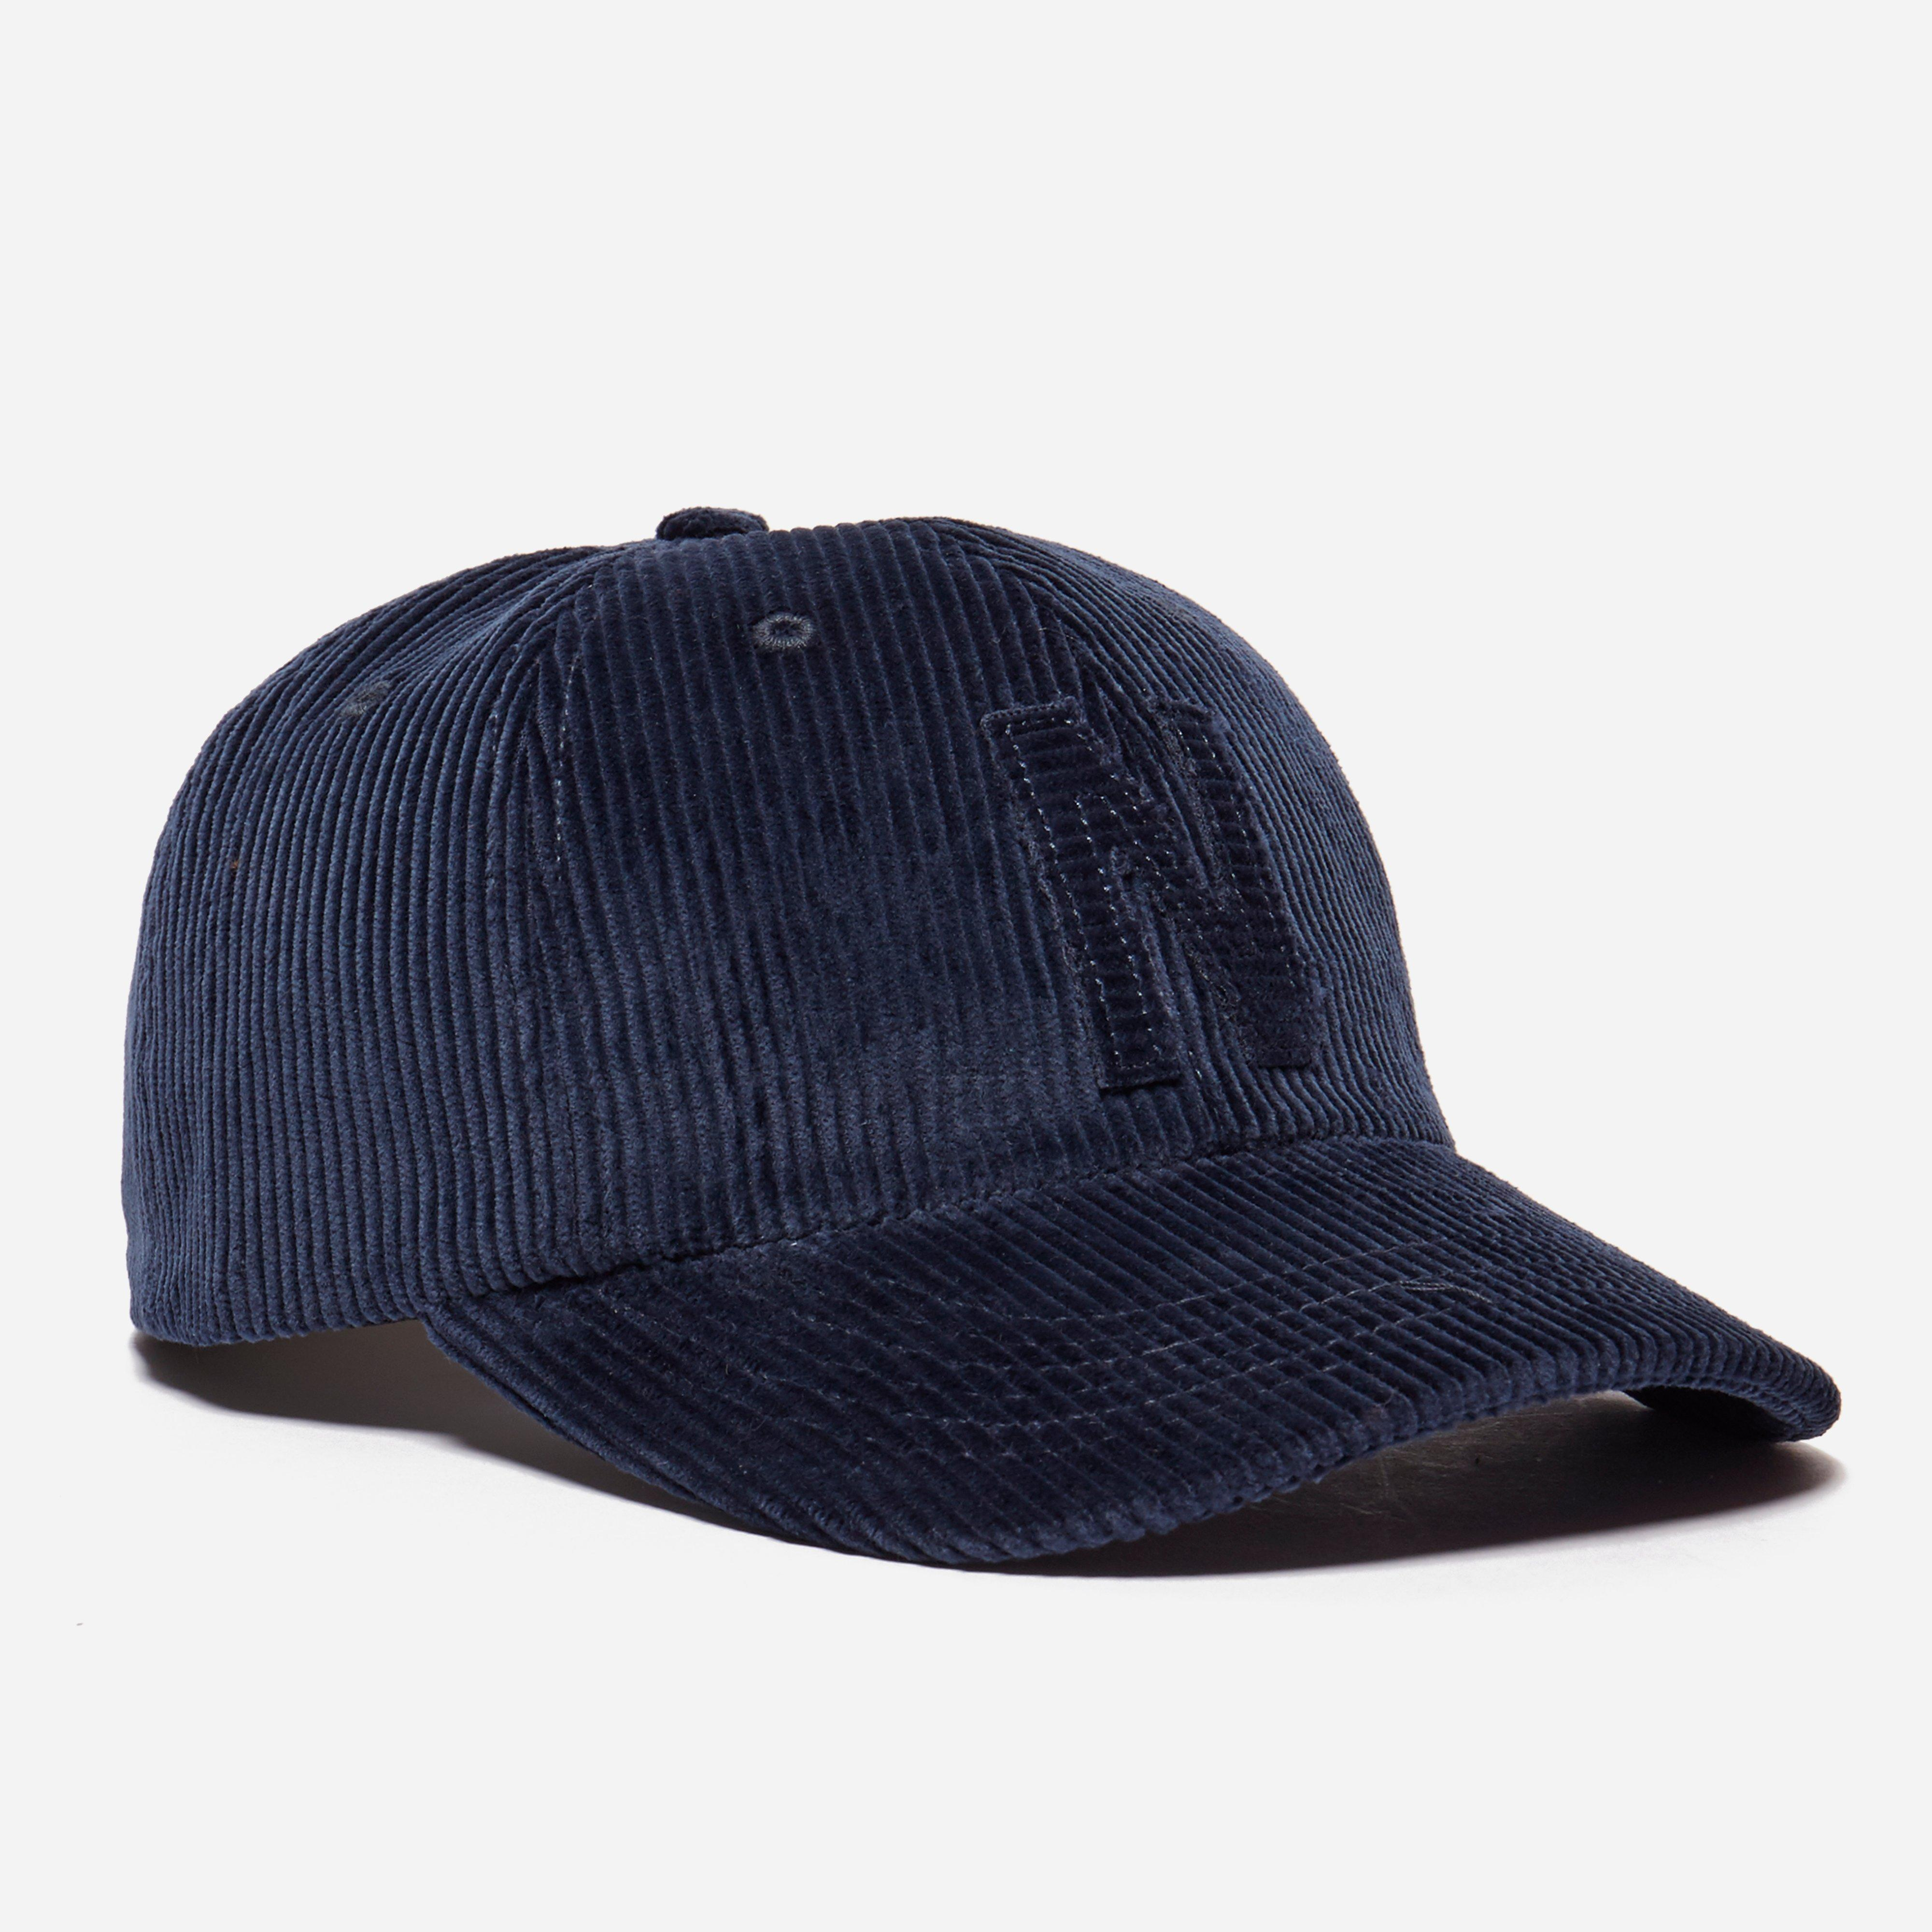 85a14a771e5 Lyst - Norse Projects 6 Panel Corduroy Cap in Blue for Men